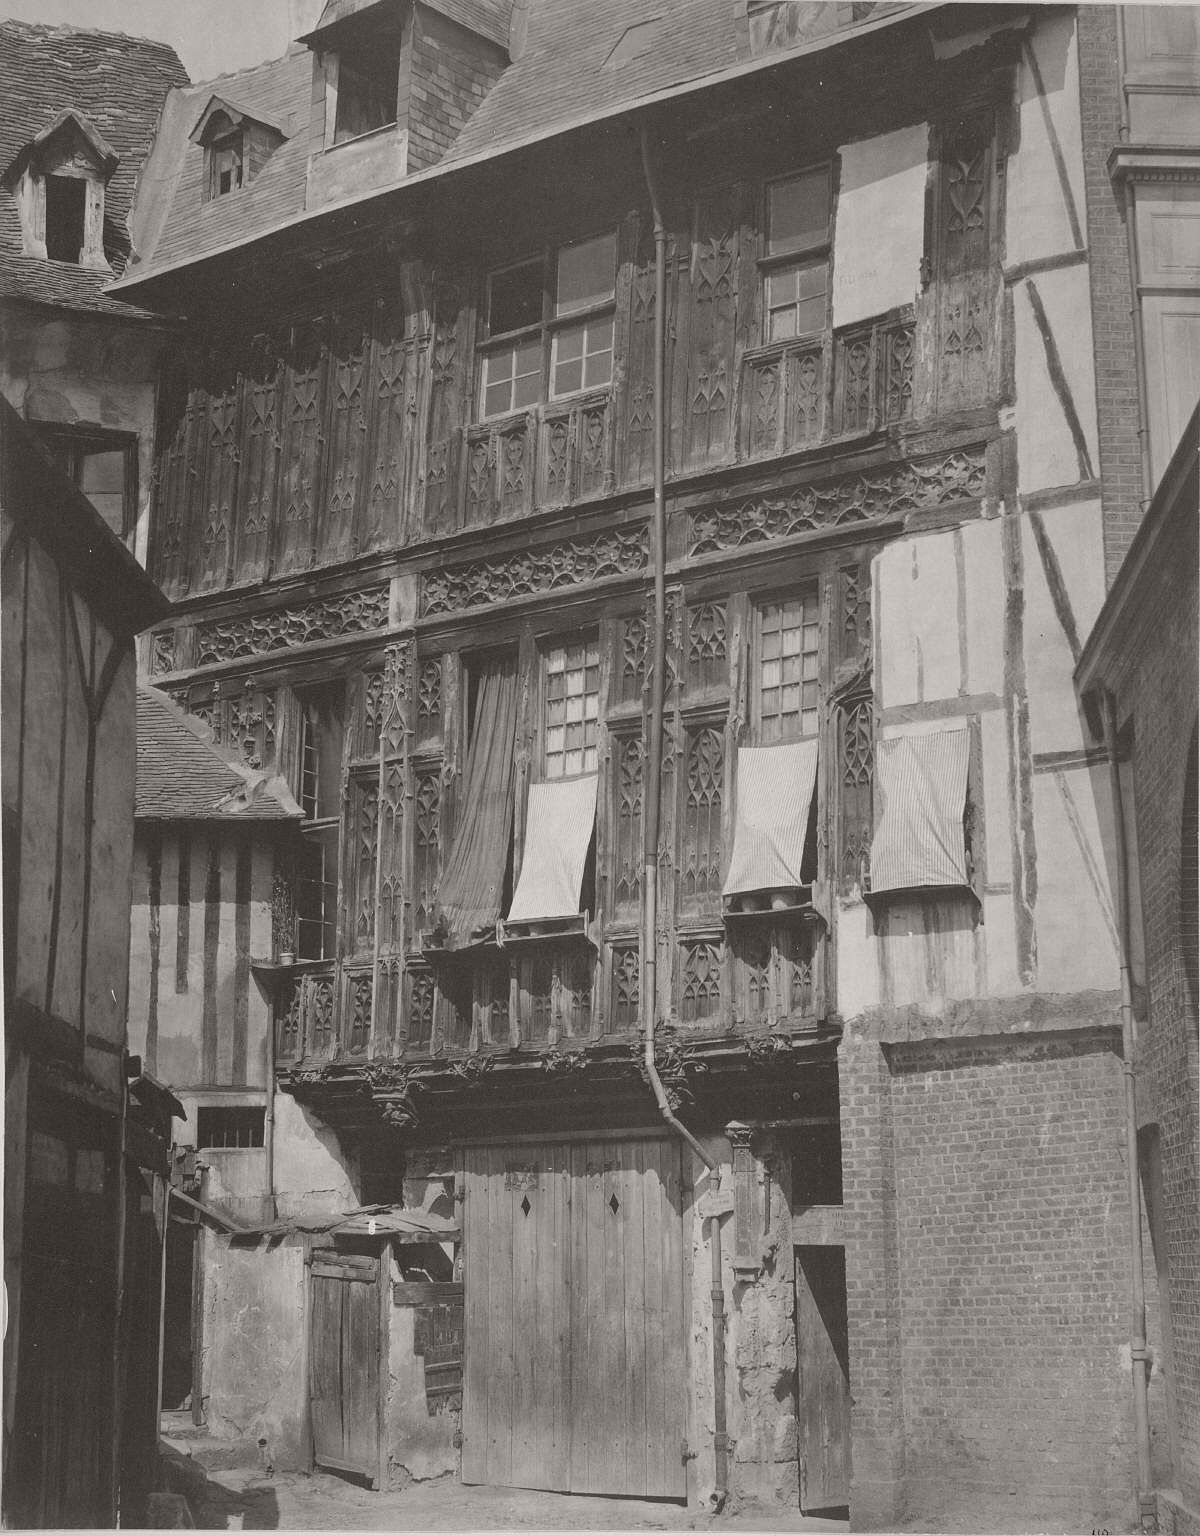 Rouen. Vestiges of the Loggia of the Abbesses from the Abbey of Saint Amand, 1858.